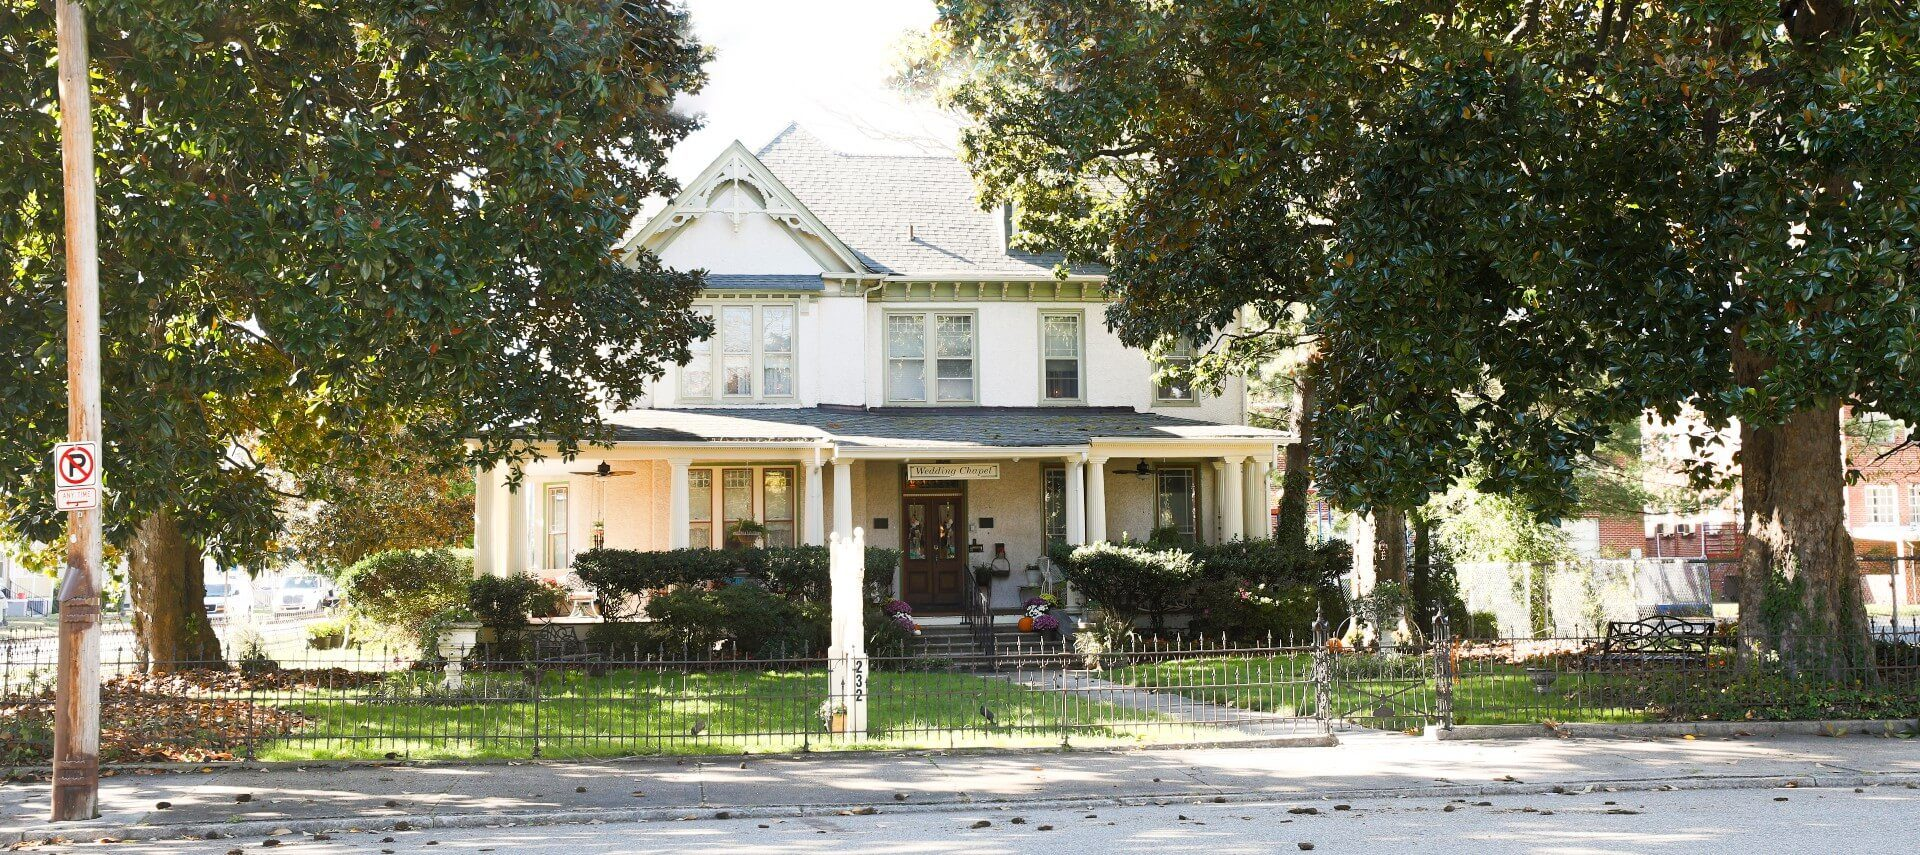 Front facing view of a beautiful white home with large front porch, white columns and wrought iron fence around yard